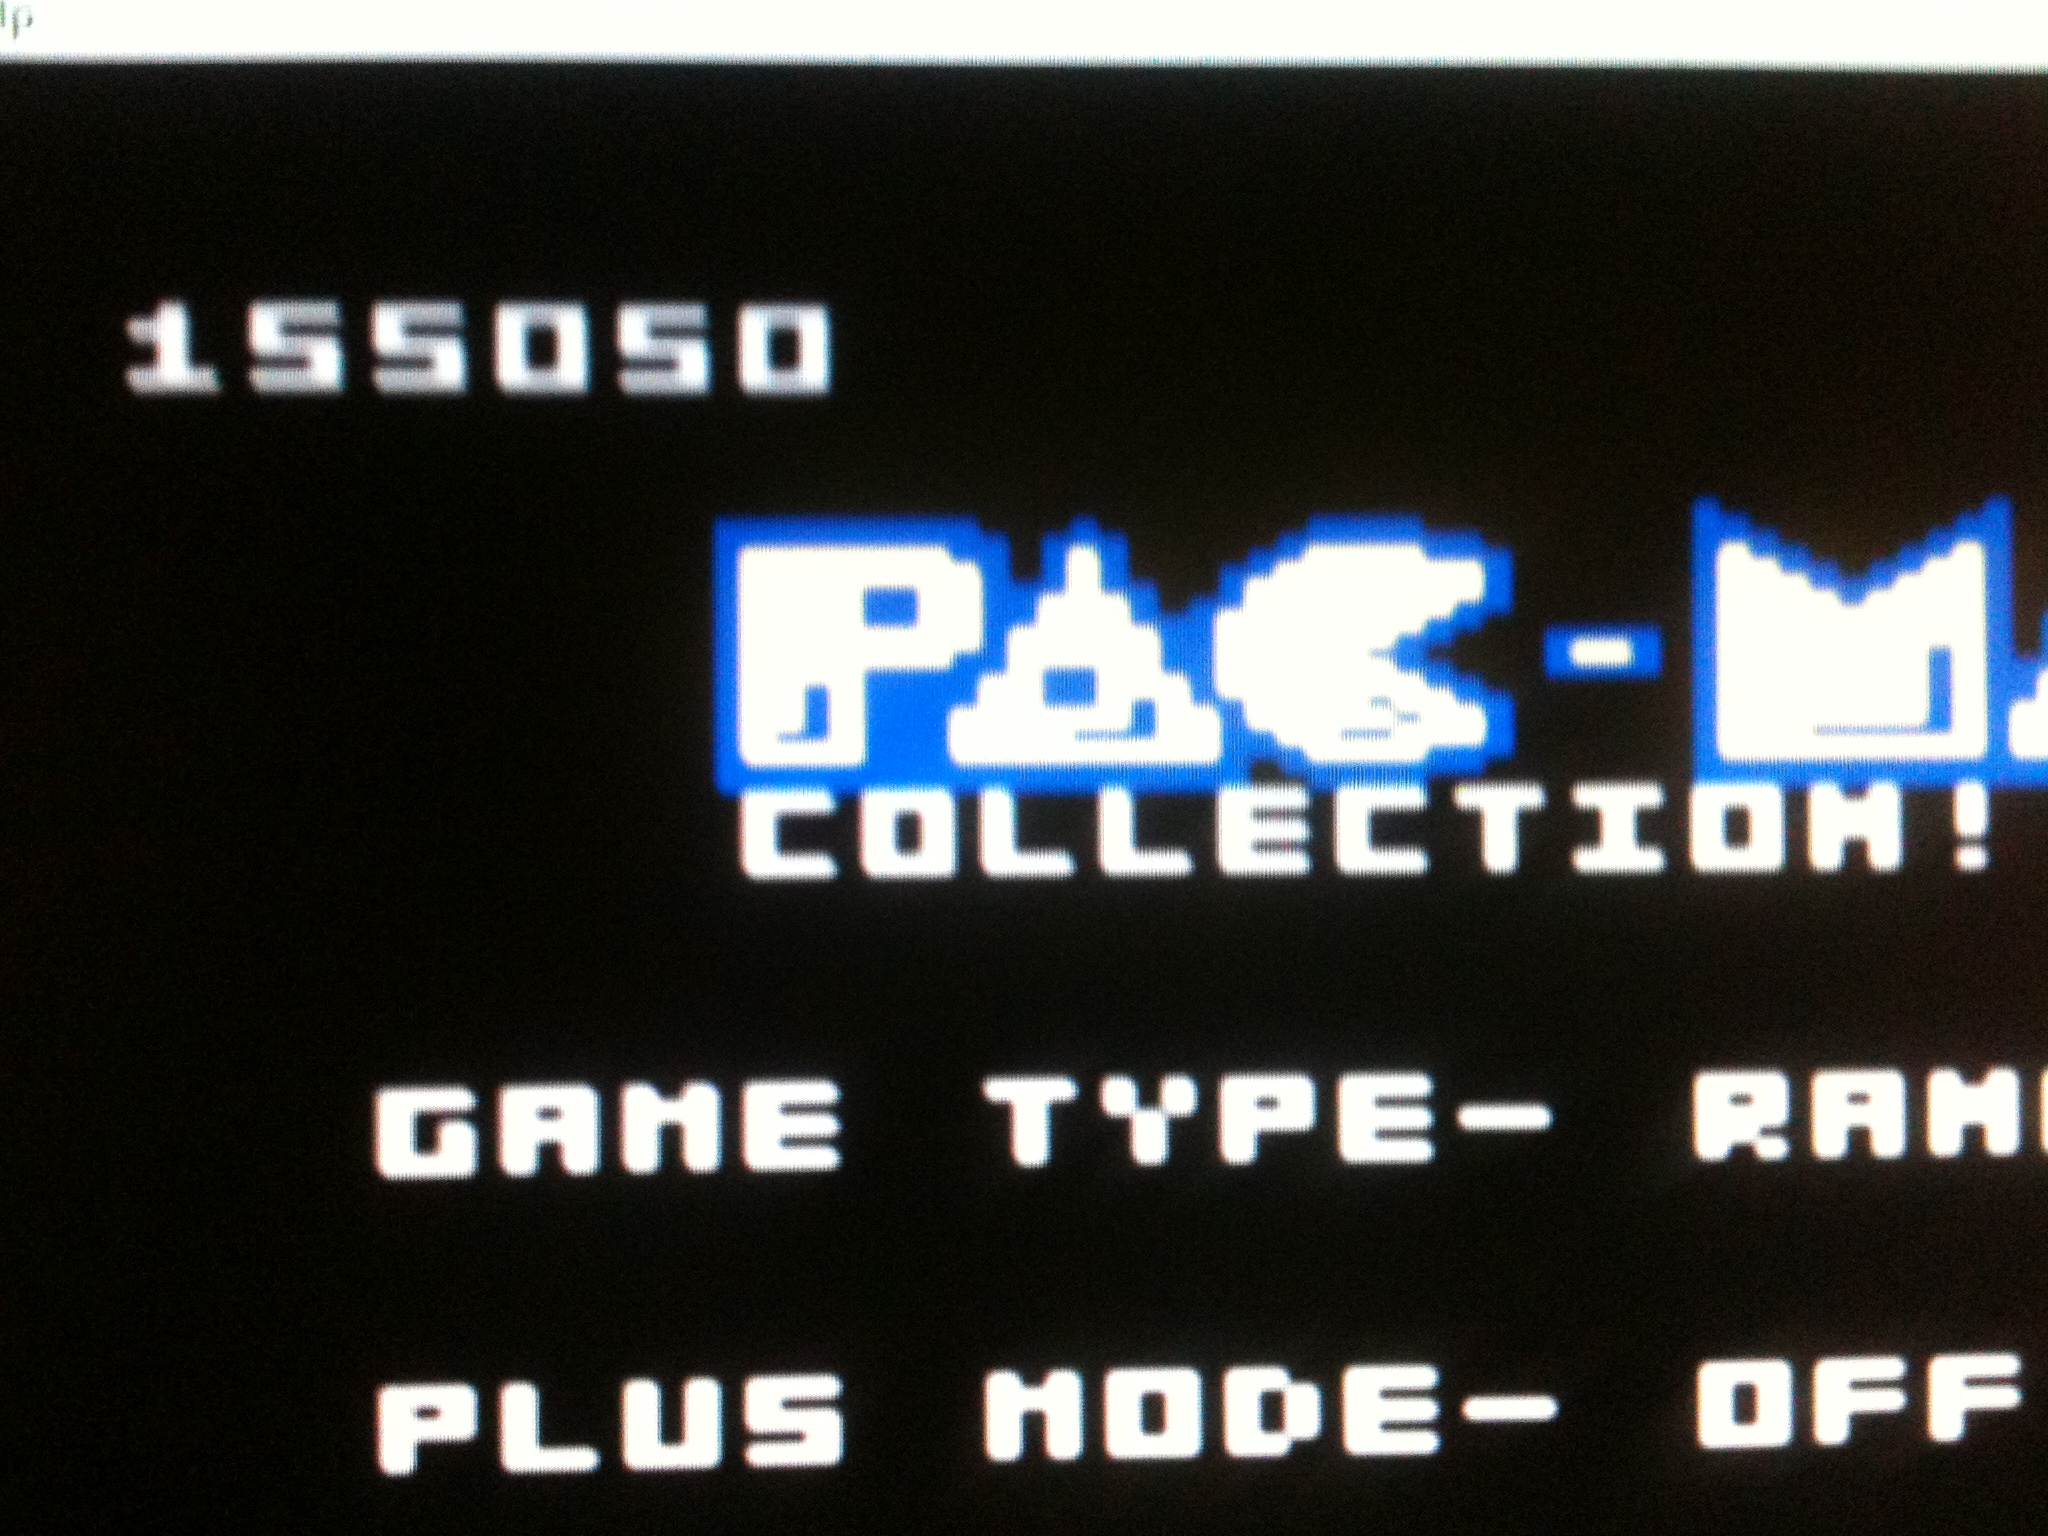 kernzy: Pac-Man Collection: Random [Galaxian Two/Plus Off/Fast On] (Atari 7800 Emulated) 155,050 points on 2015-09-16 13:53:00